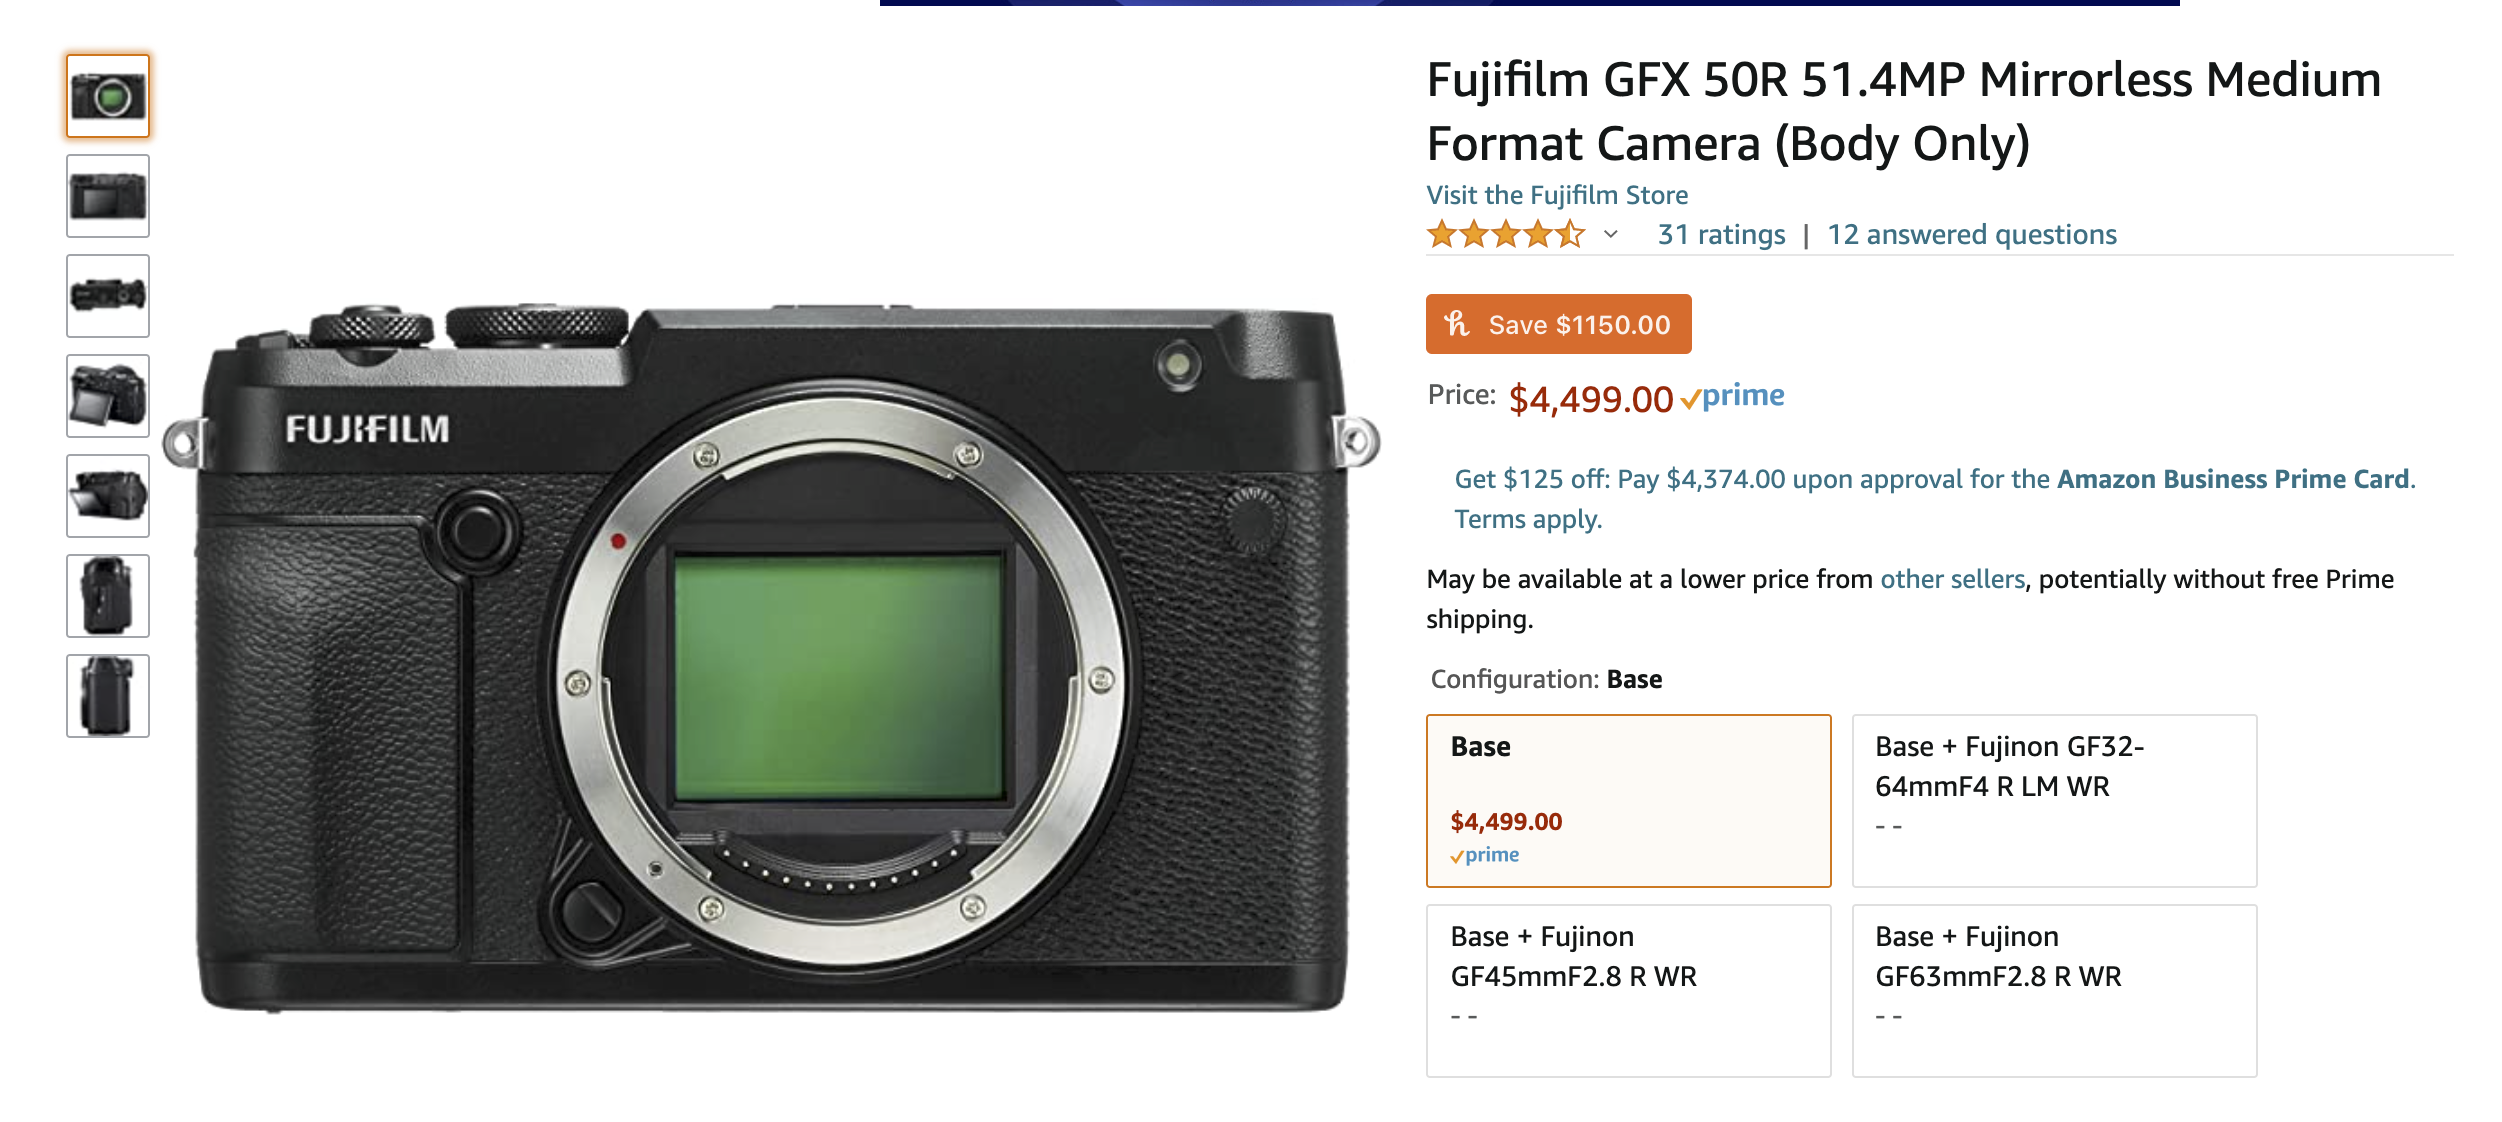 How to Get the Fujifilm GFX 50R for $1,000 Less. Hurry!